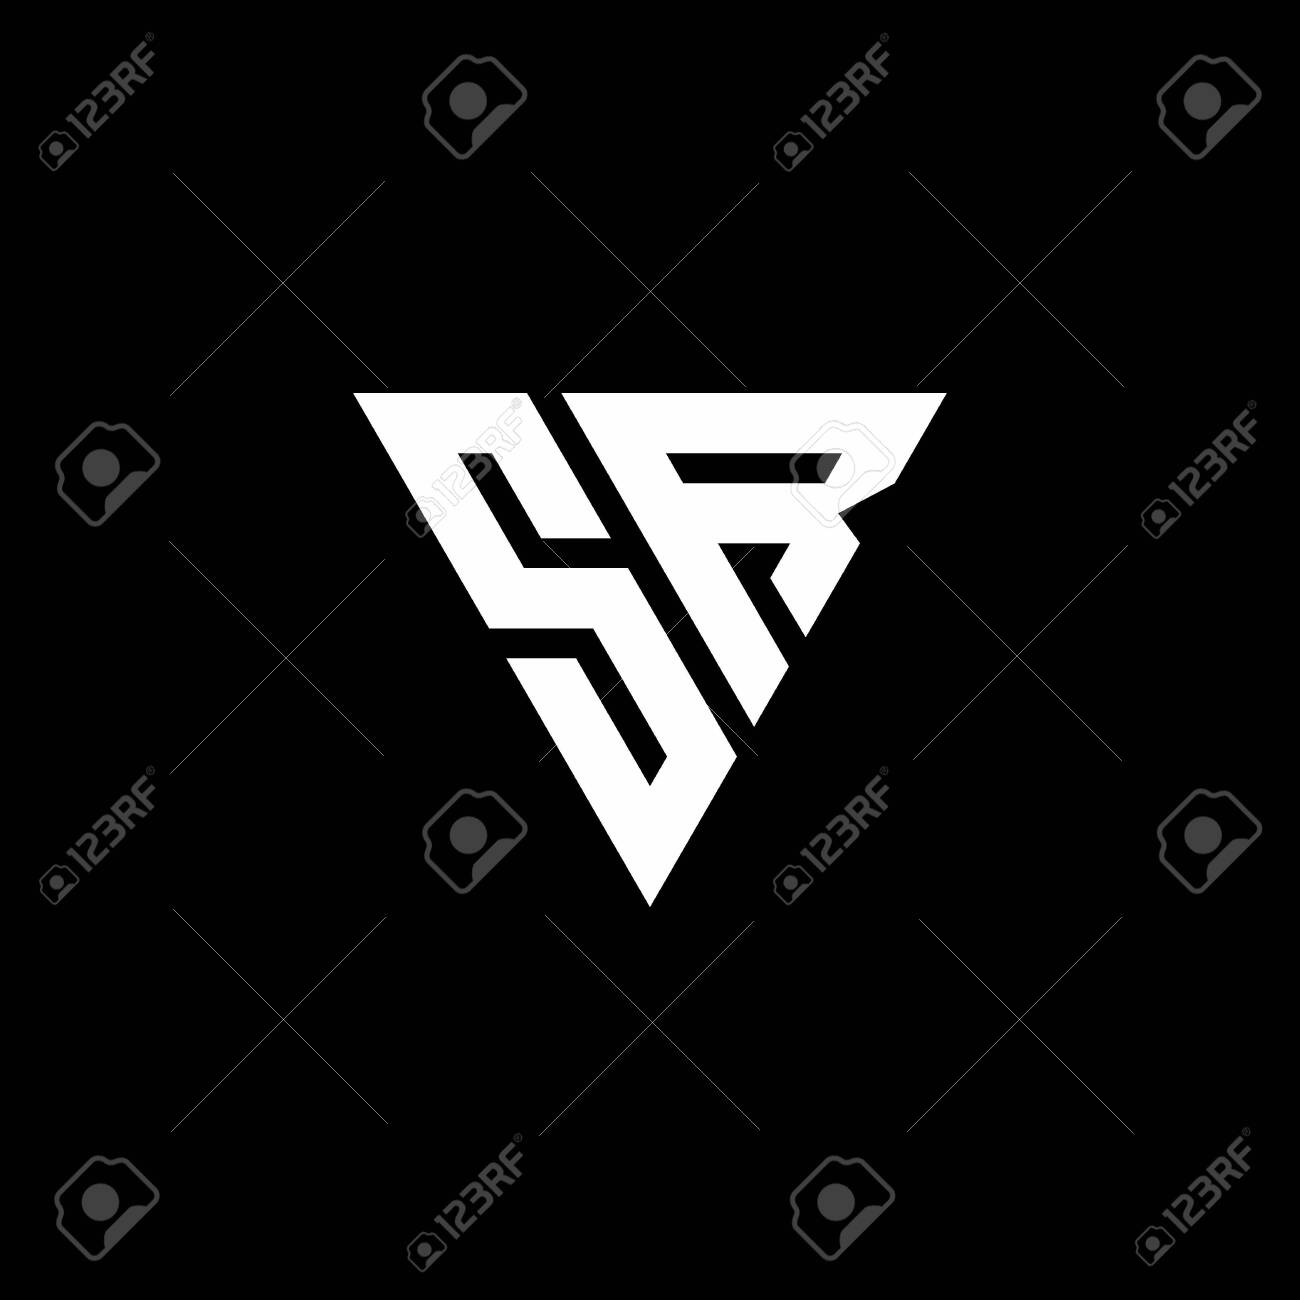 Sr Logo Letter Monogram With Triangle Shape Design Template Isolated Royalty Free Cliparts Vectors And Stock Illustration Image 143378382